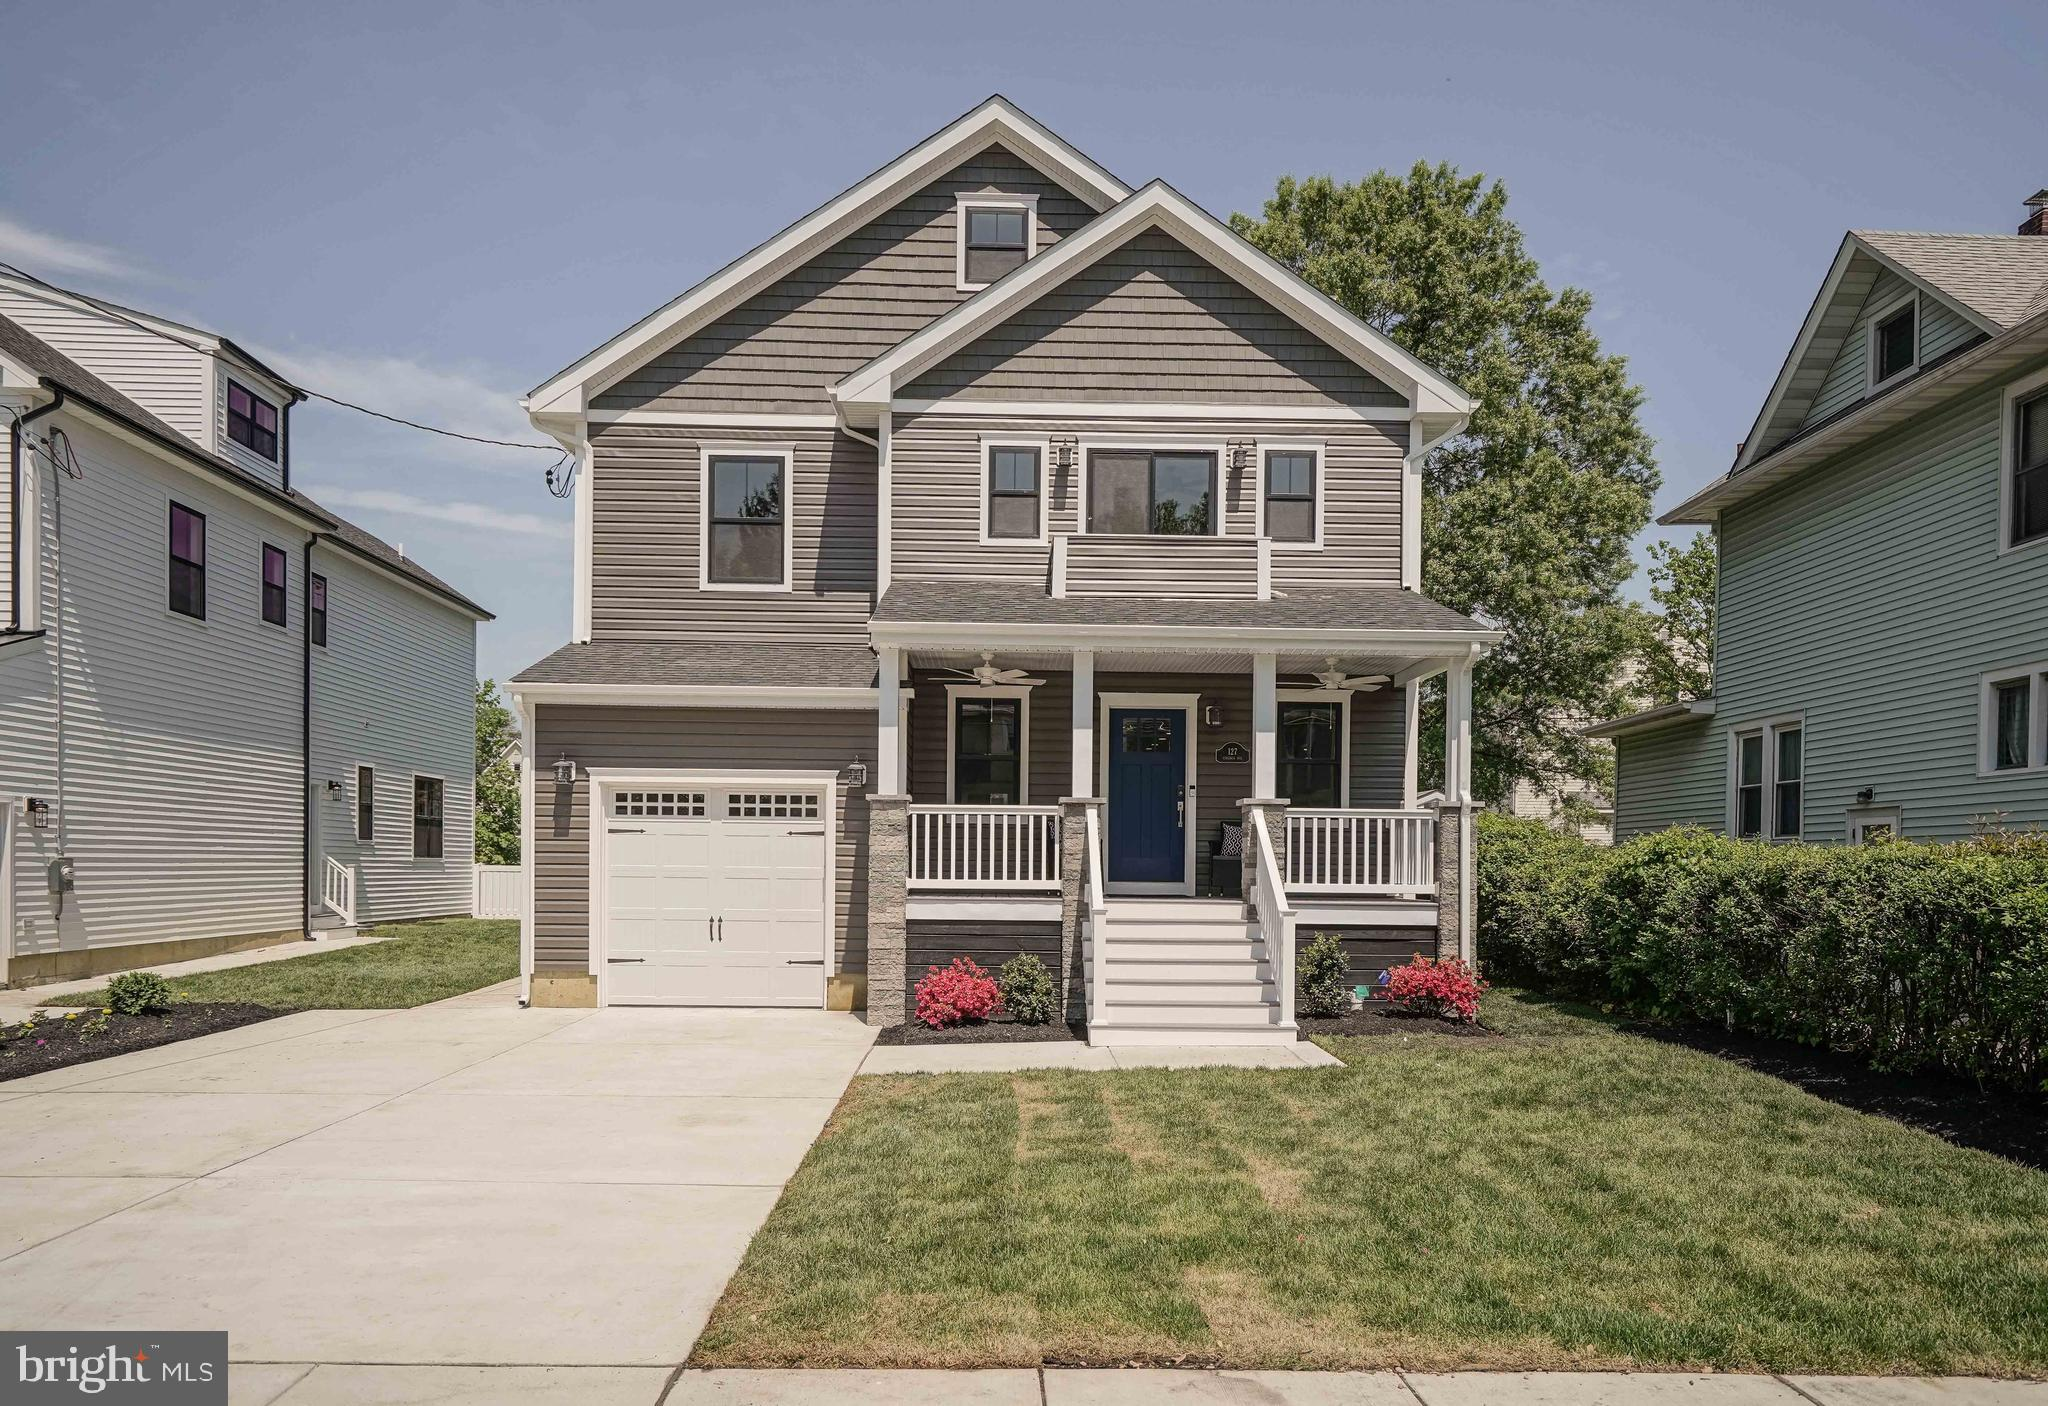 127 VIRGINIA, HADDON TOWNSHIP, NJ 08108